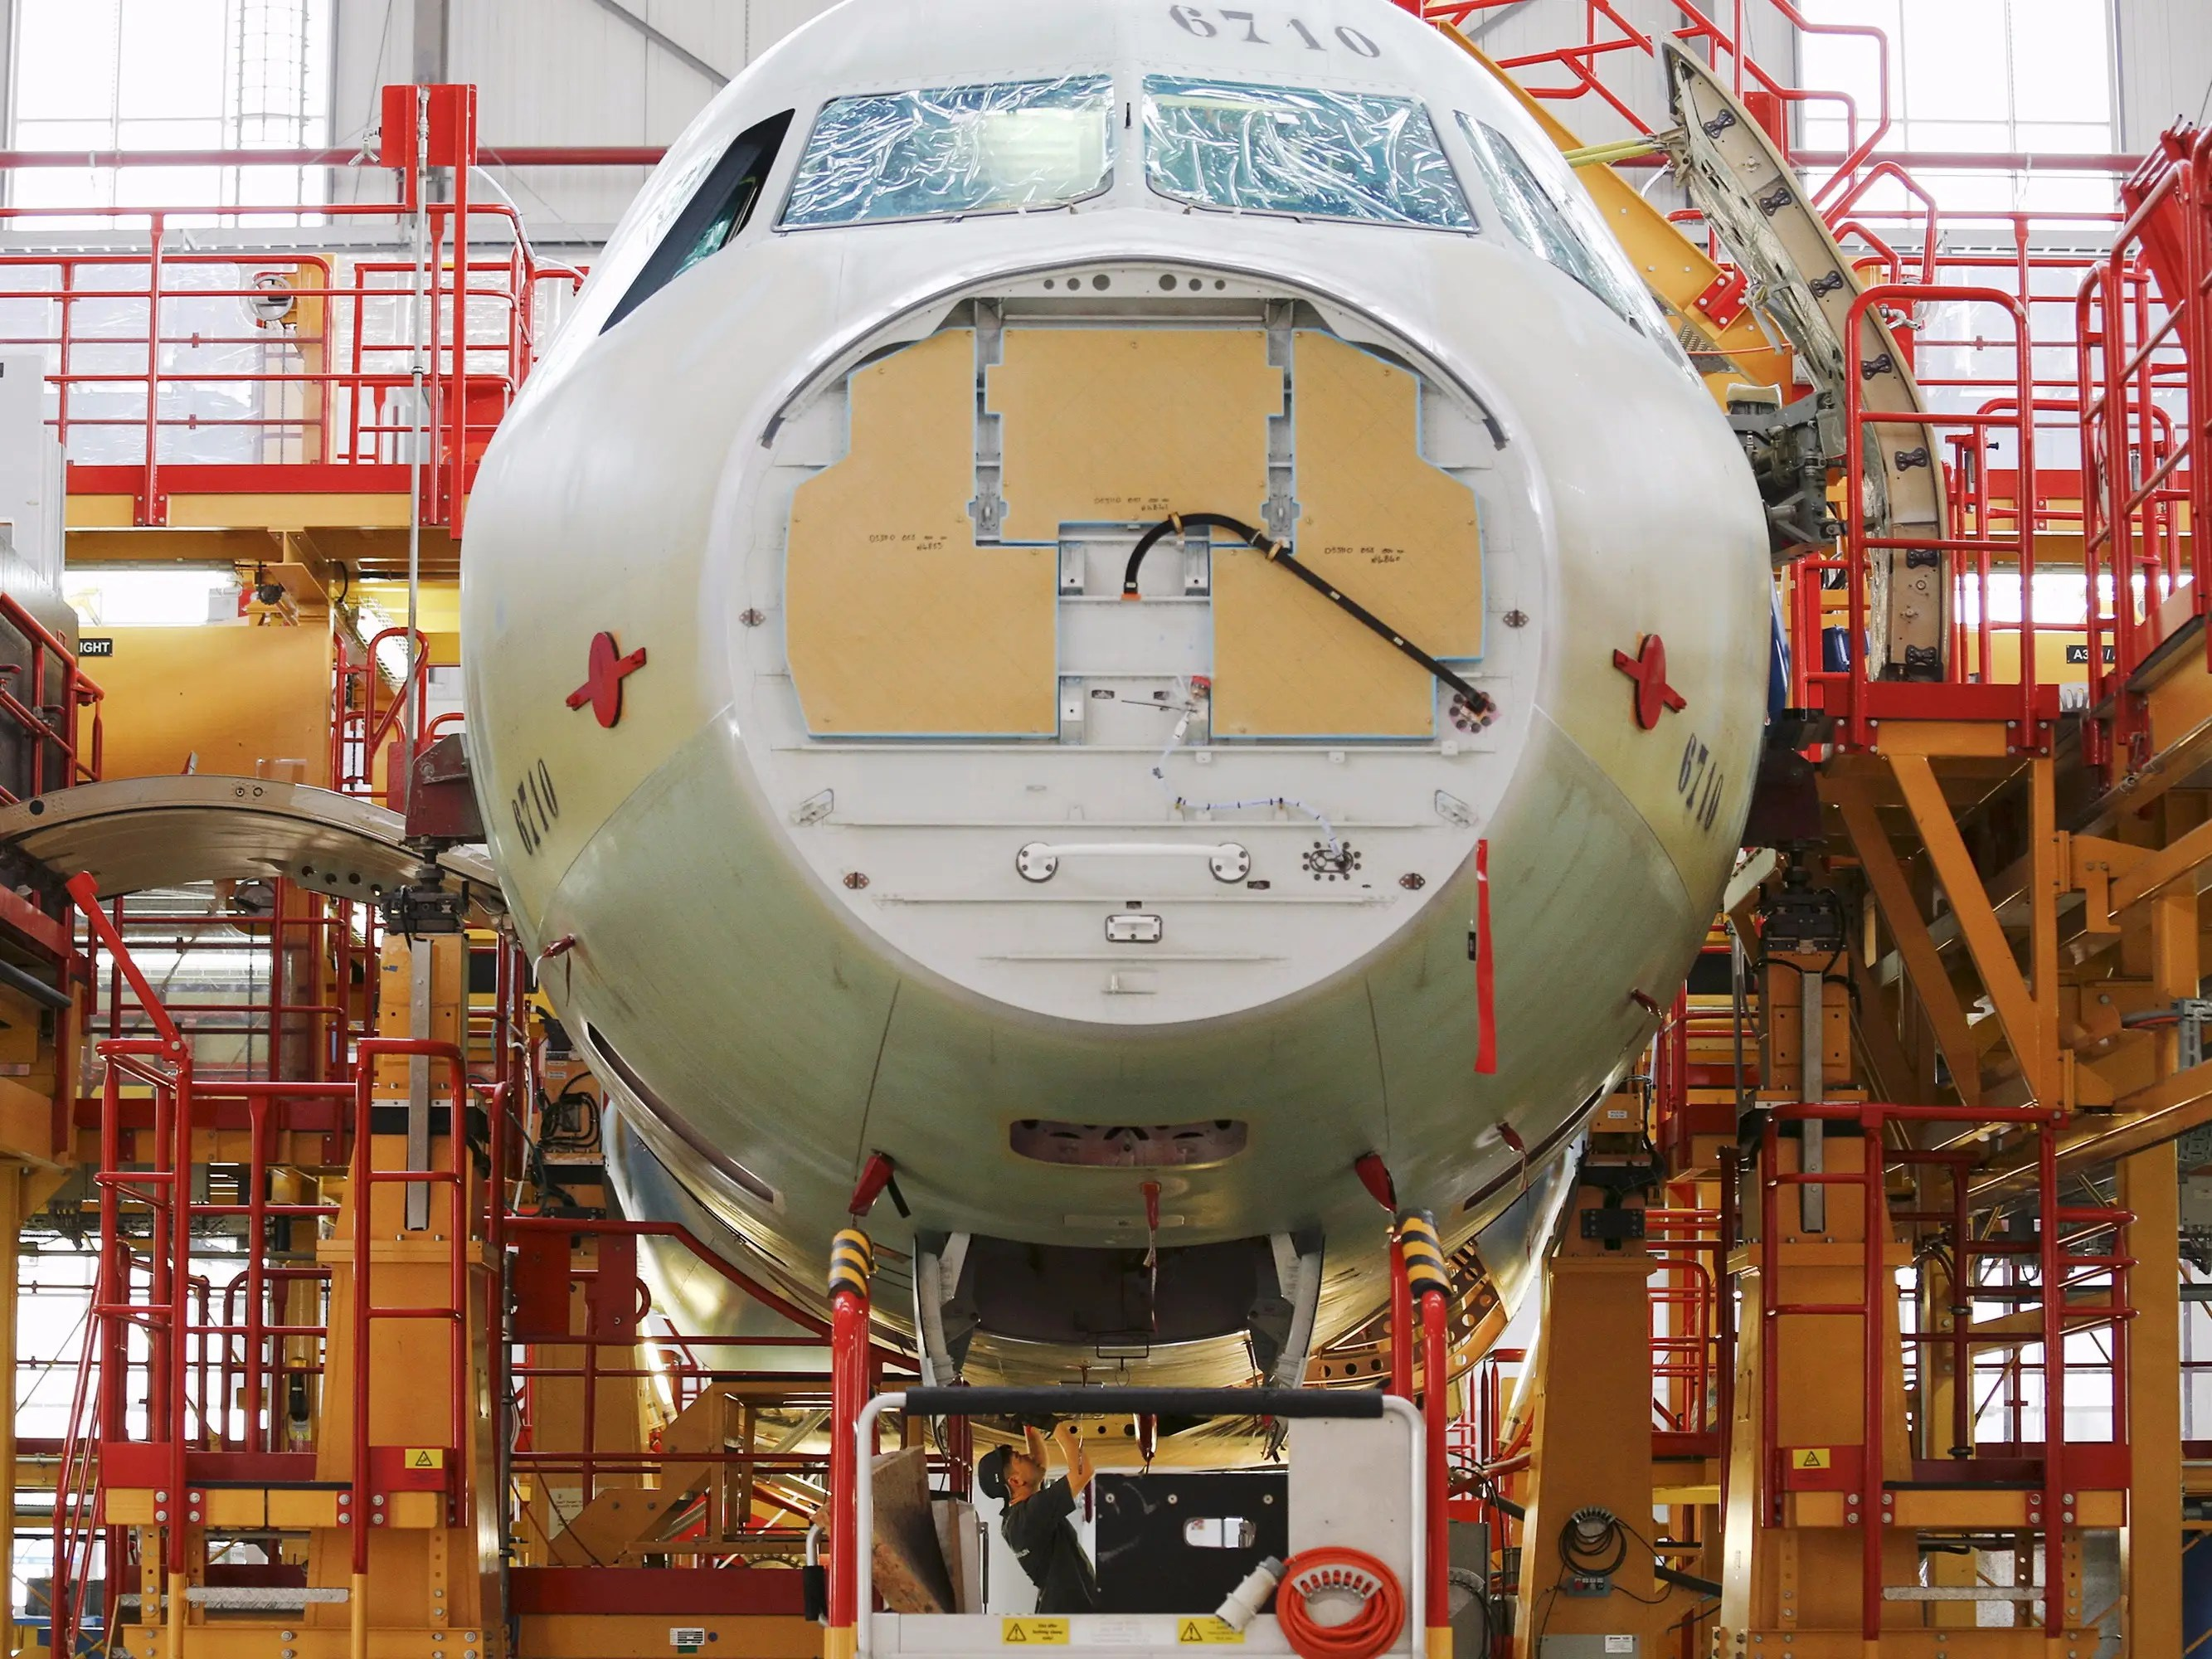 https://i0.wp.com/static2.businessinsider.com/image/55de1a55bd86ef1b008b624c/heres-the-chinese-factory-where-airbus-assembles-its-most-popular-plane.jpg